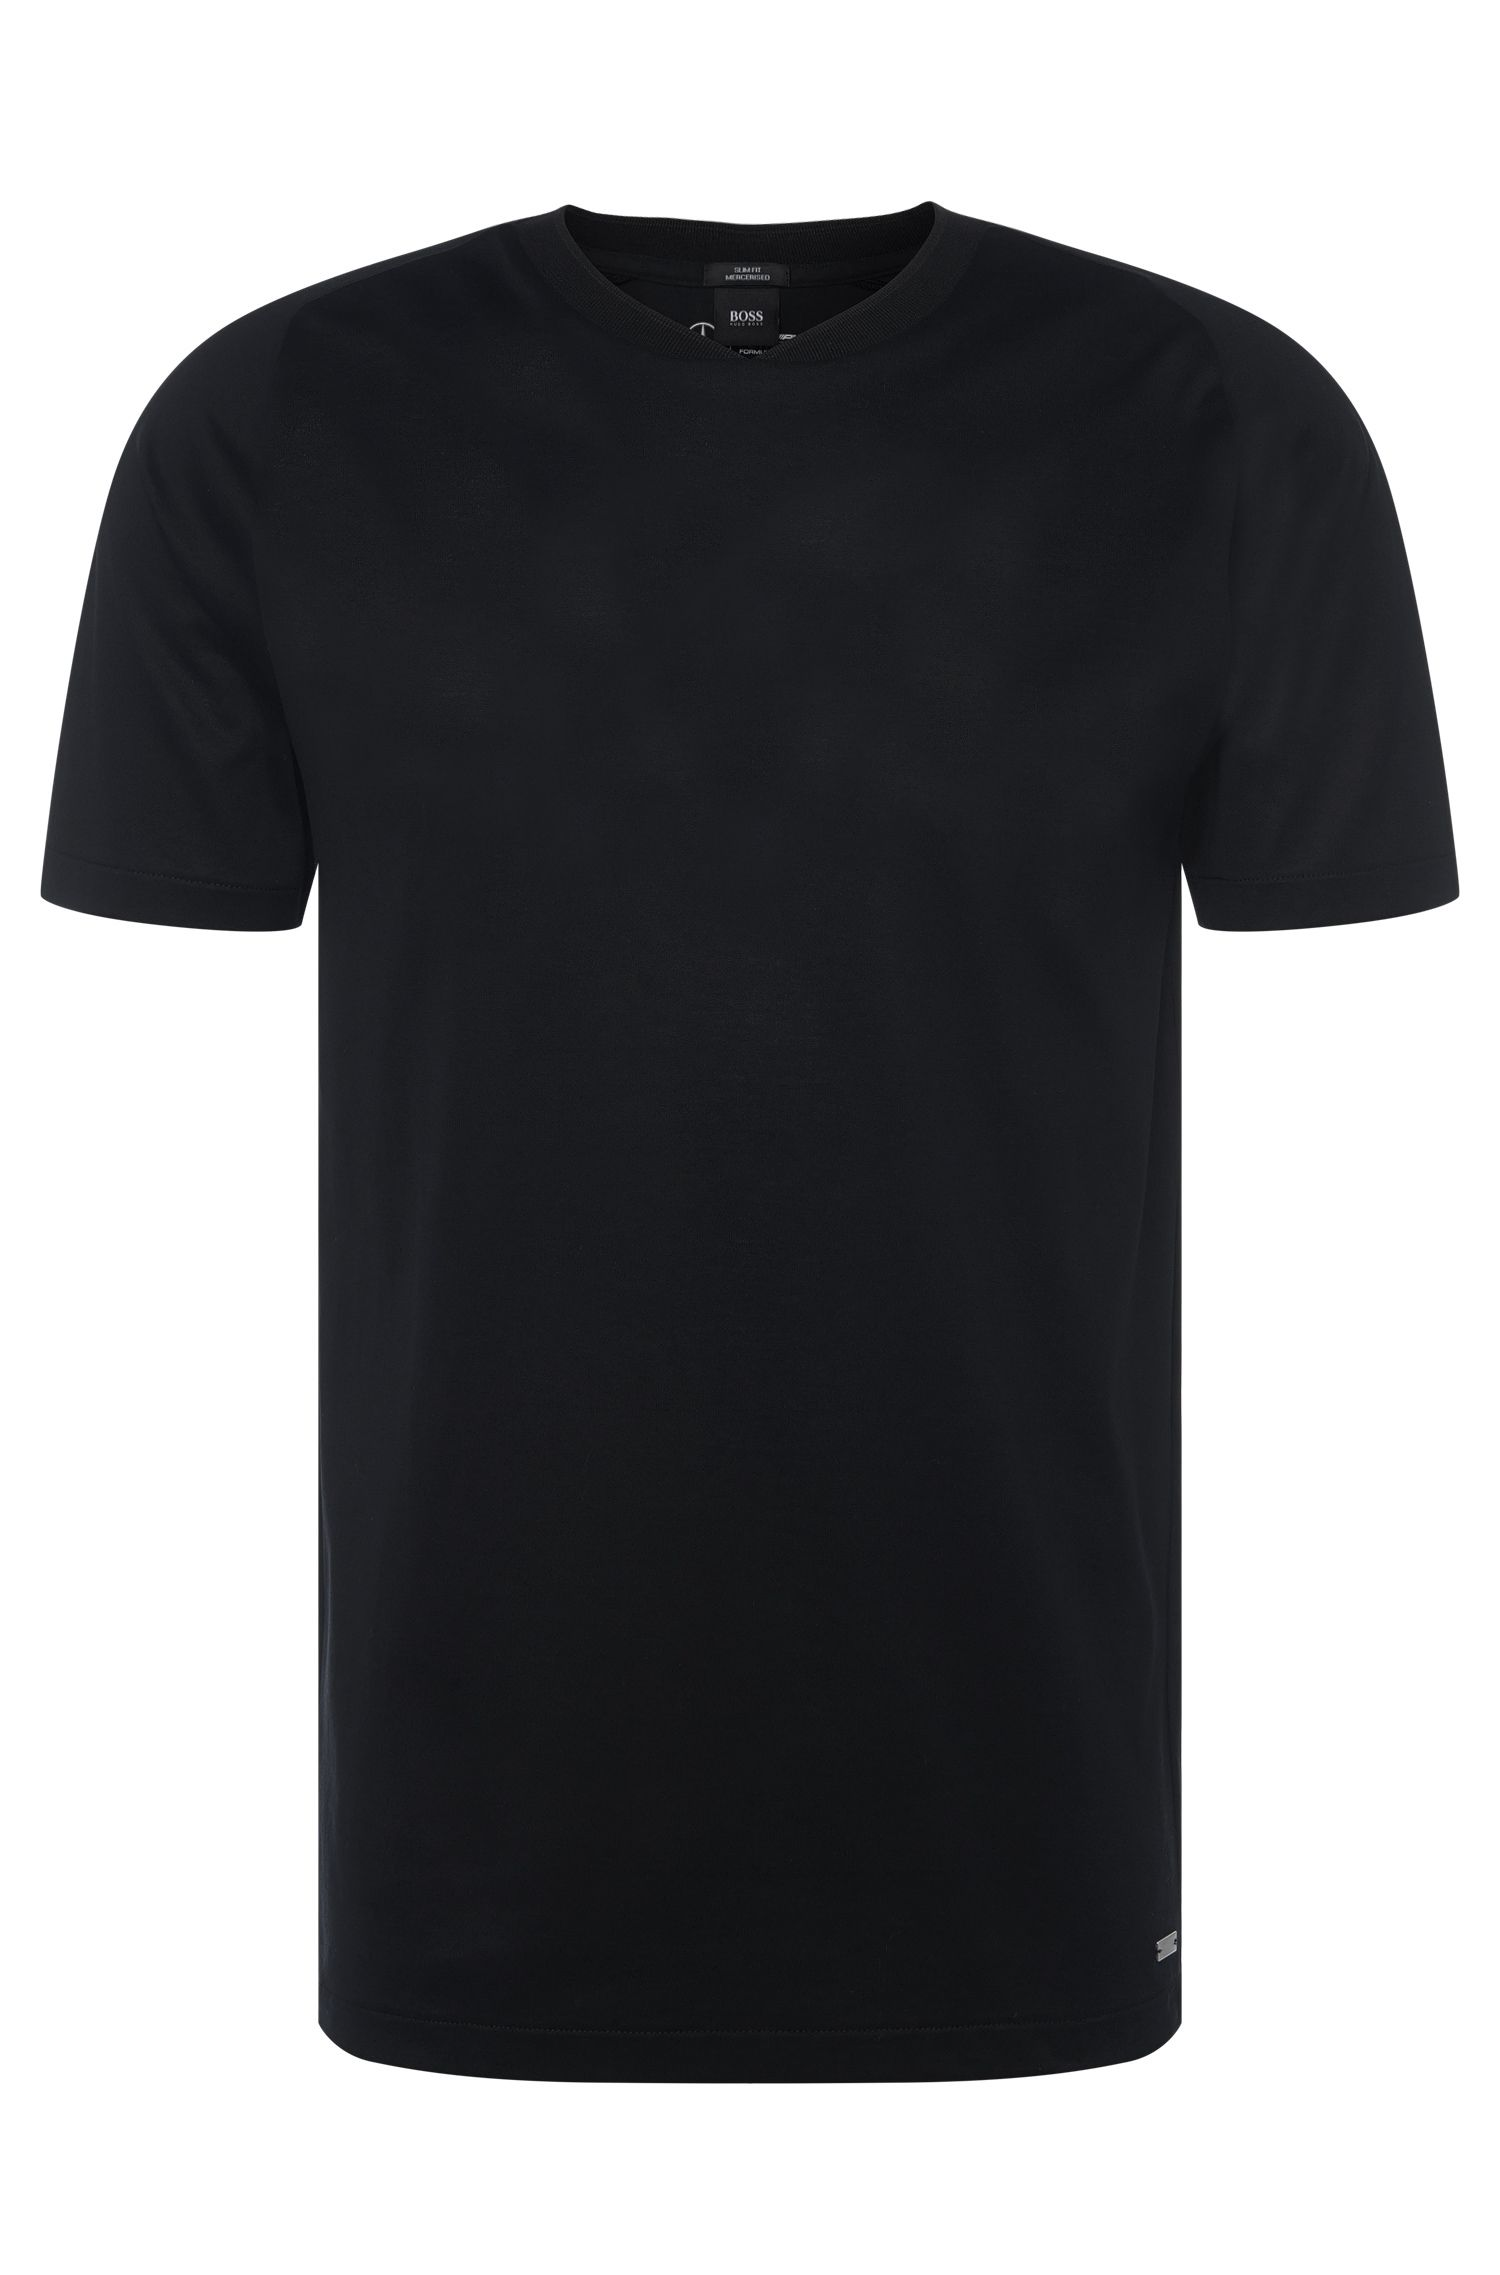 'Tessler' | Mercerized Cotton T-Shirt